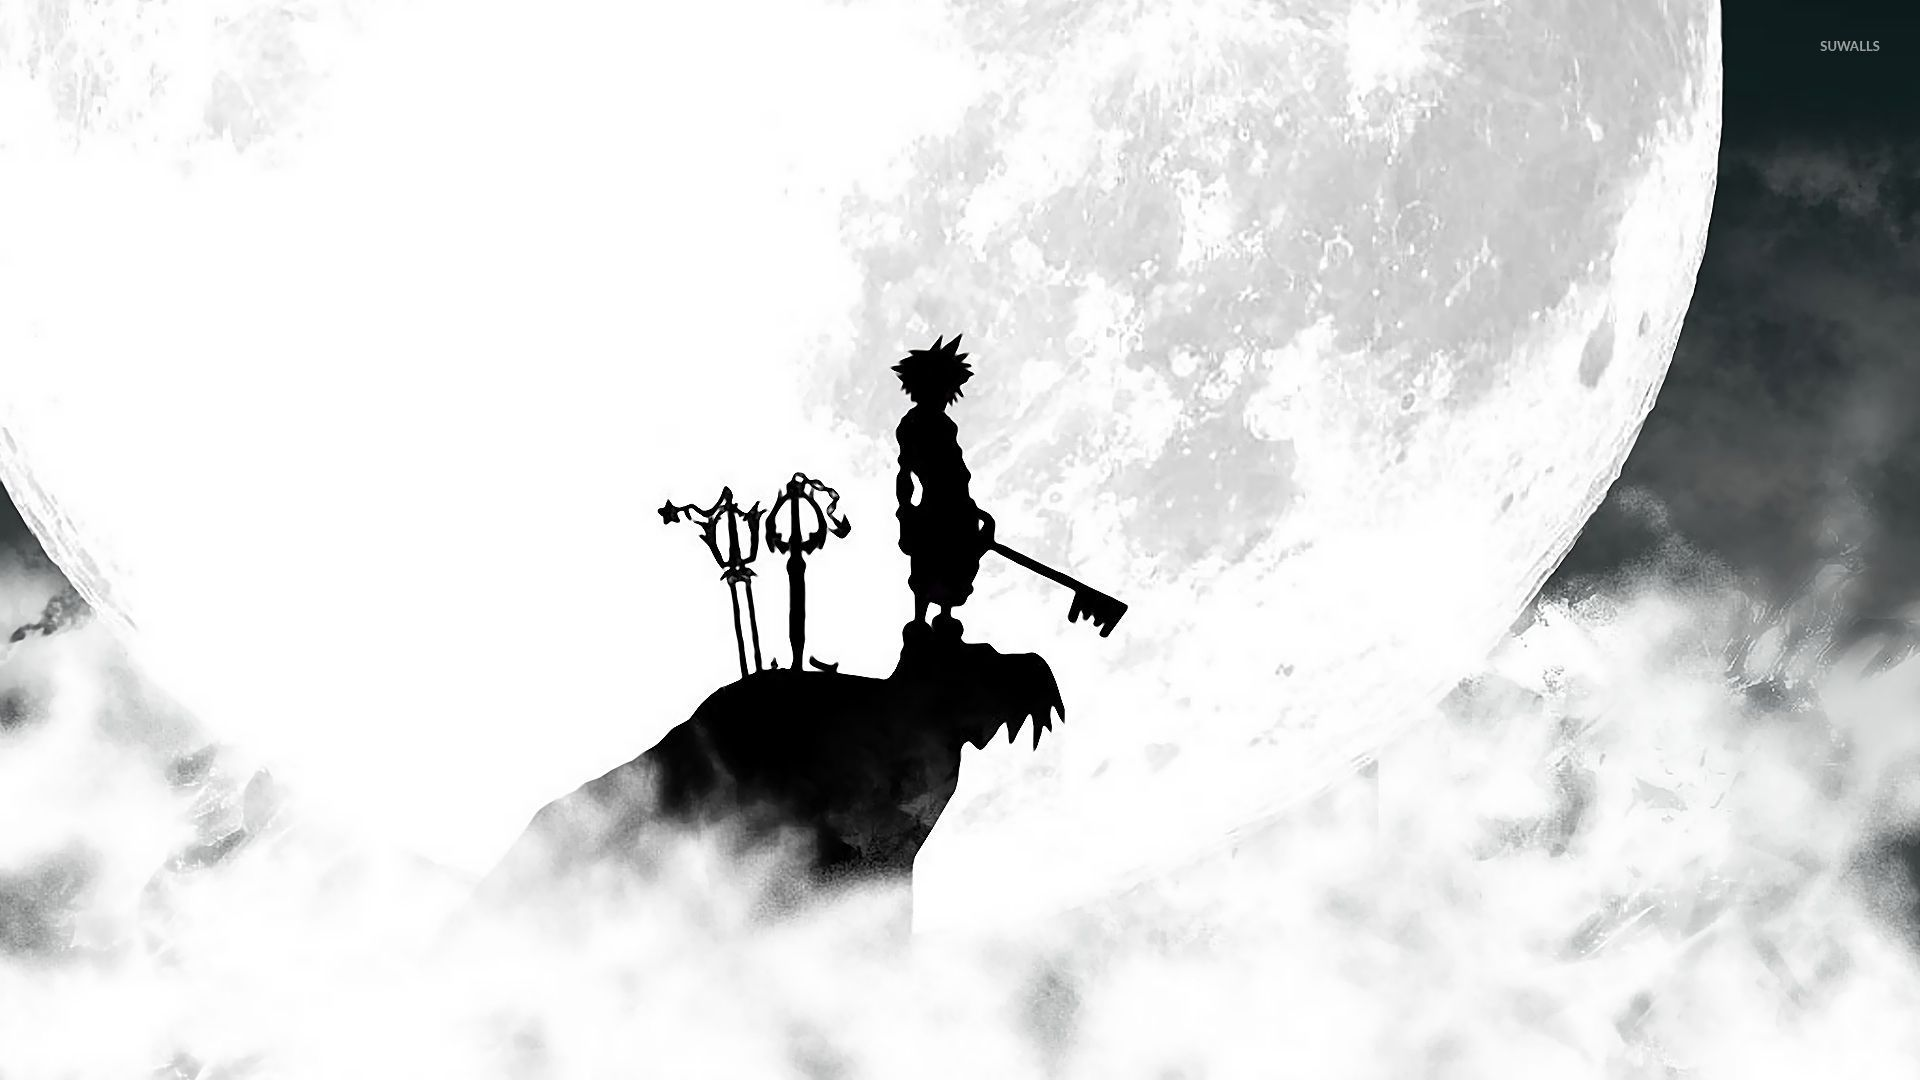 Kingdom Hearts 3 warrior on the cliff wallpaper